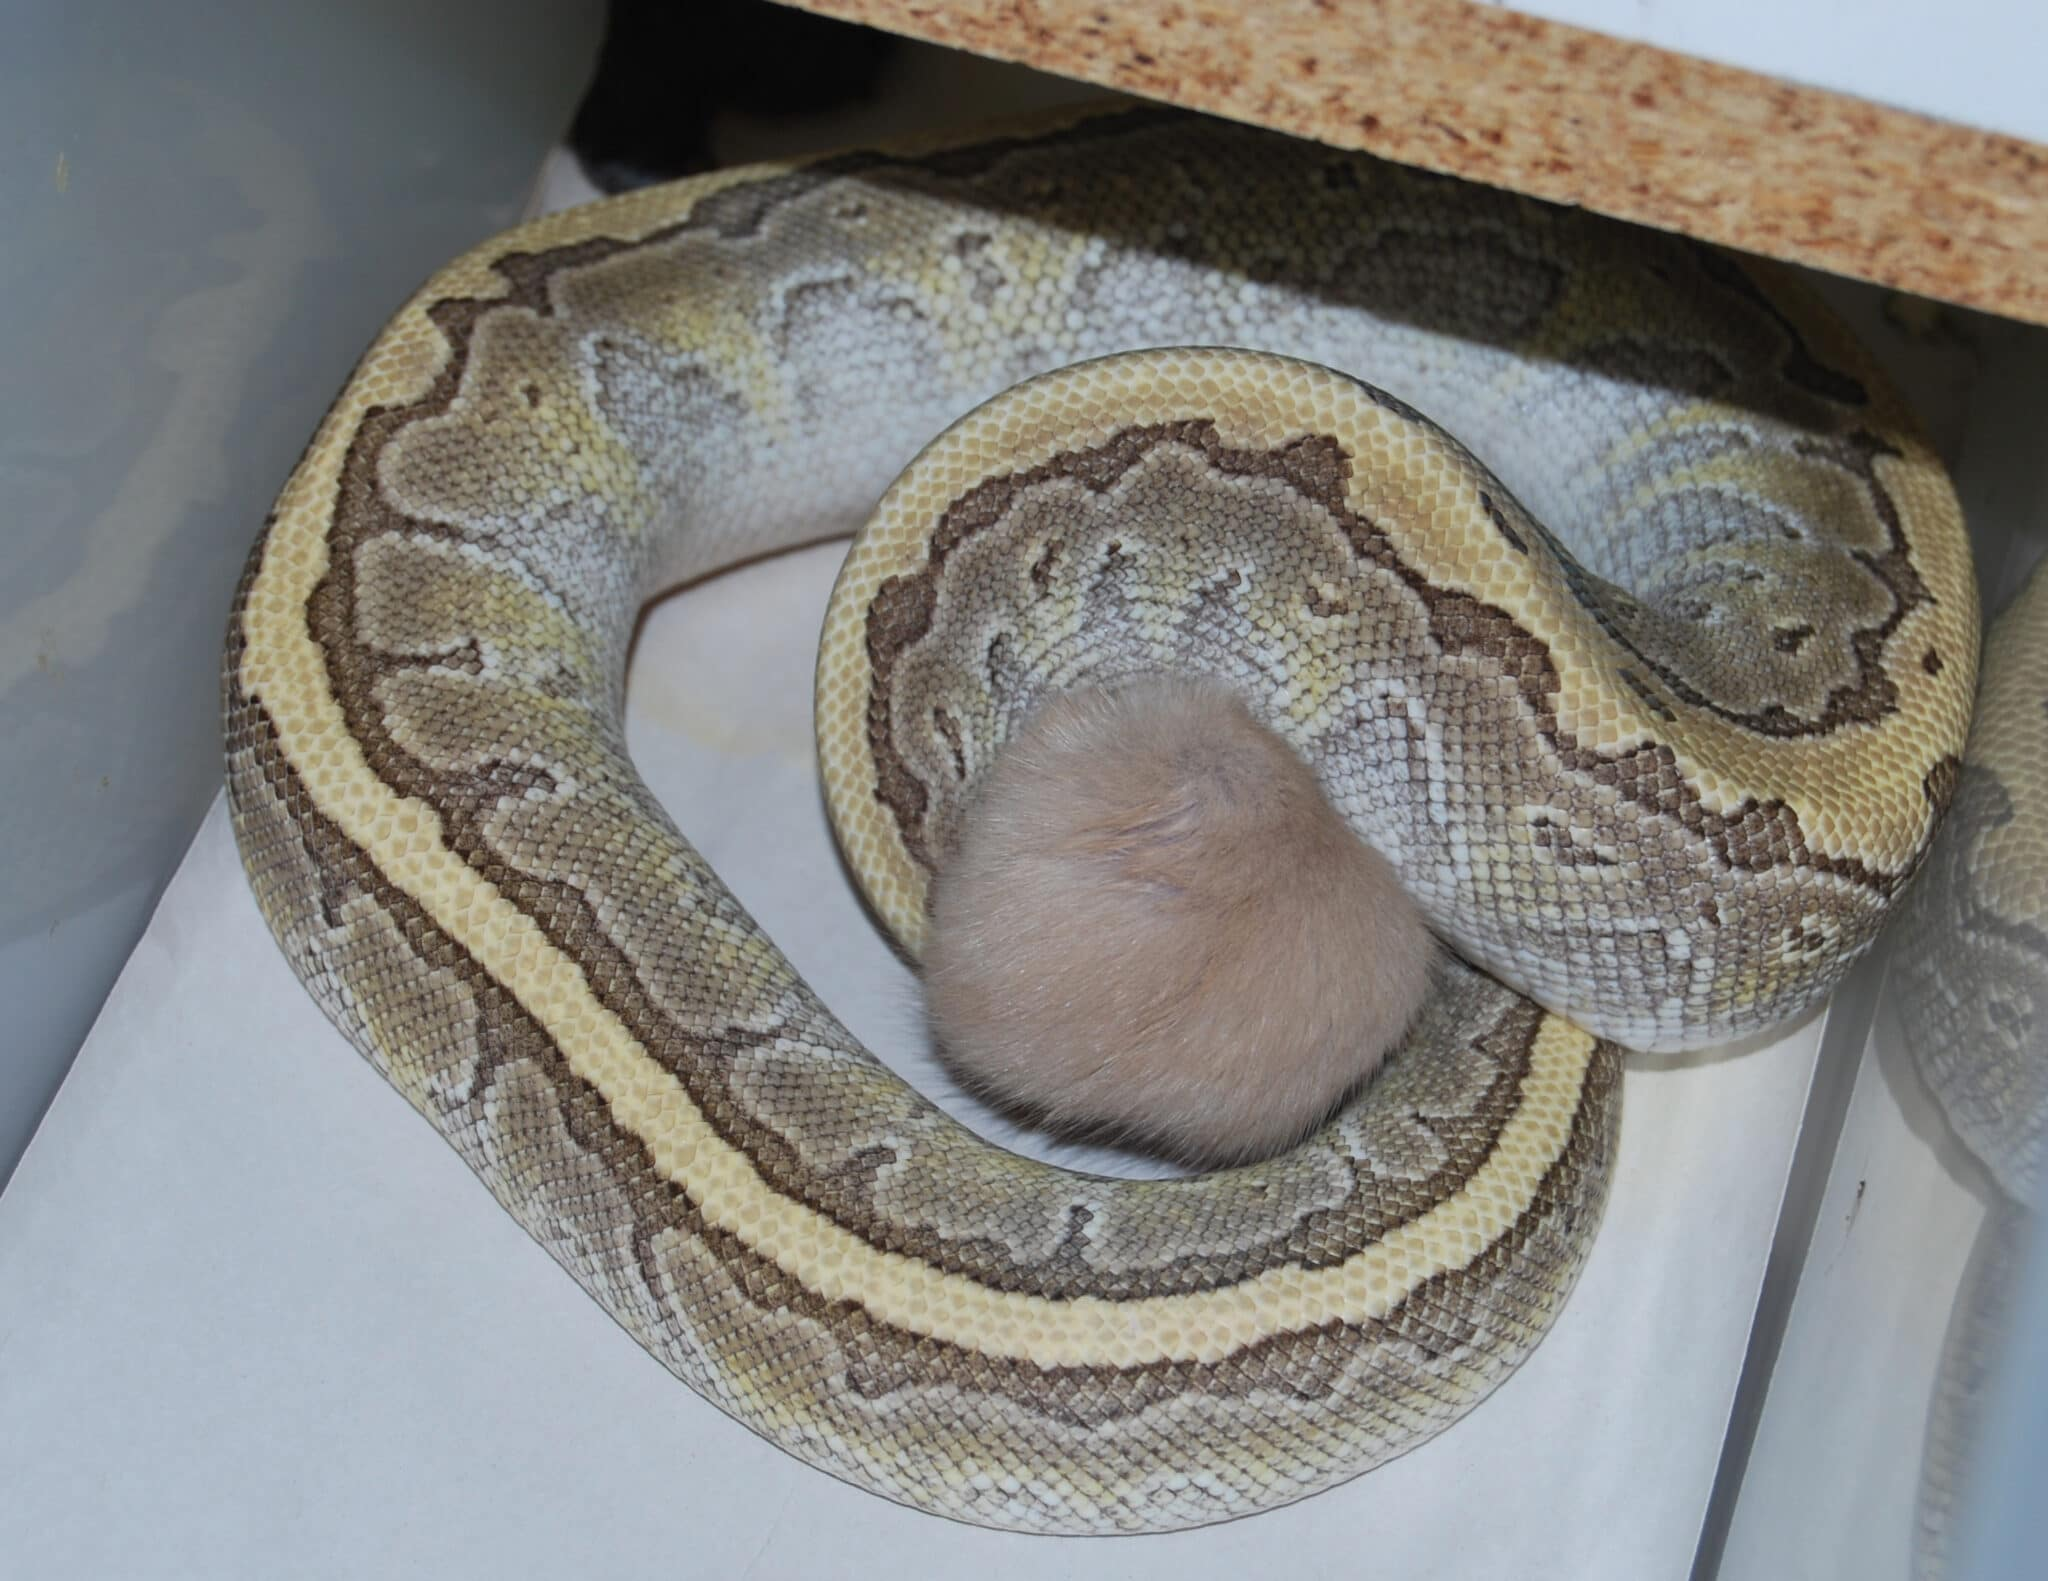 Lesser pinstripe Ball Python eating